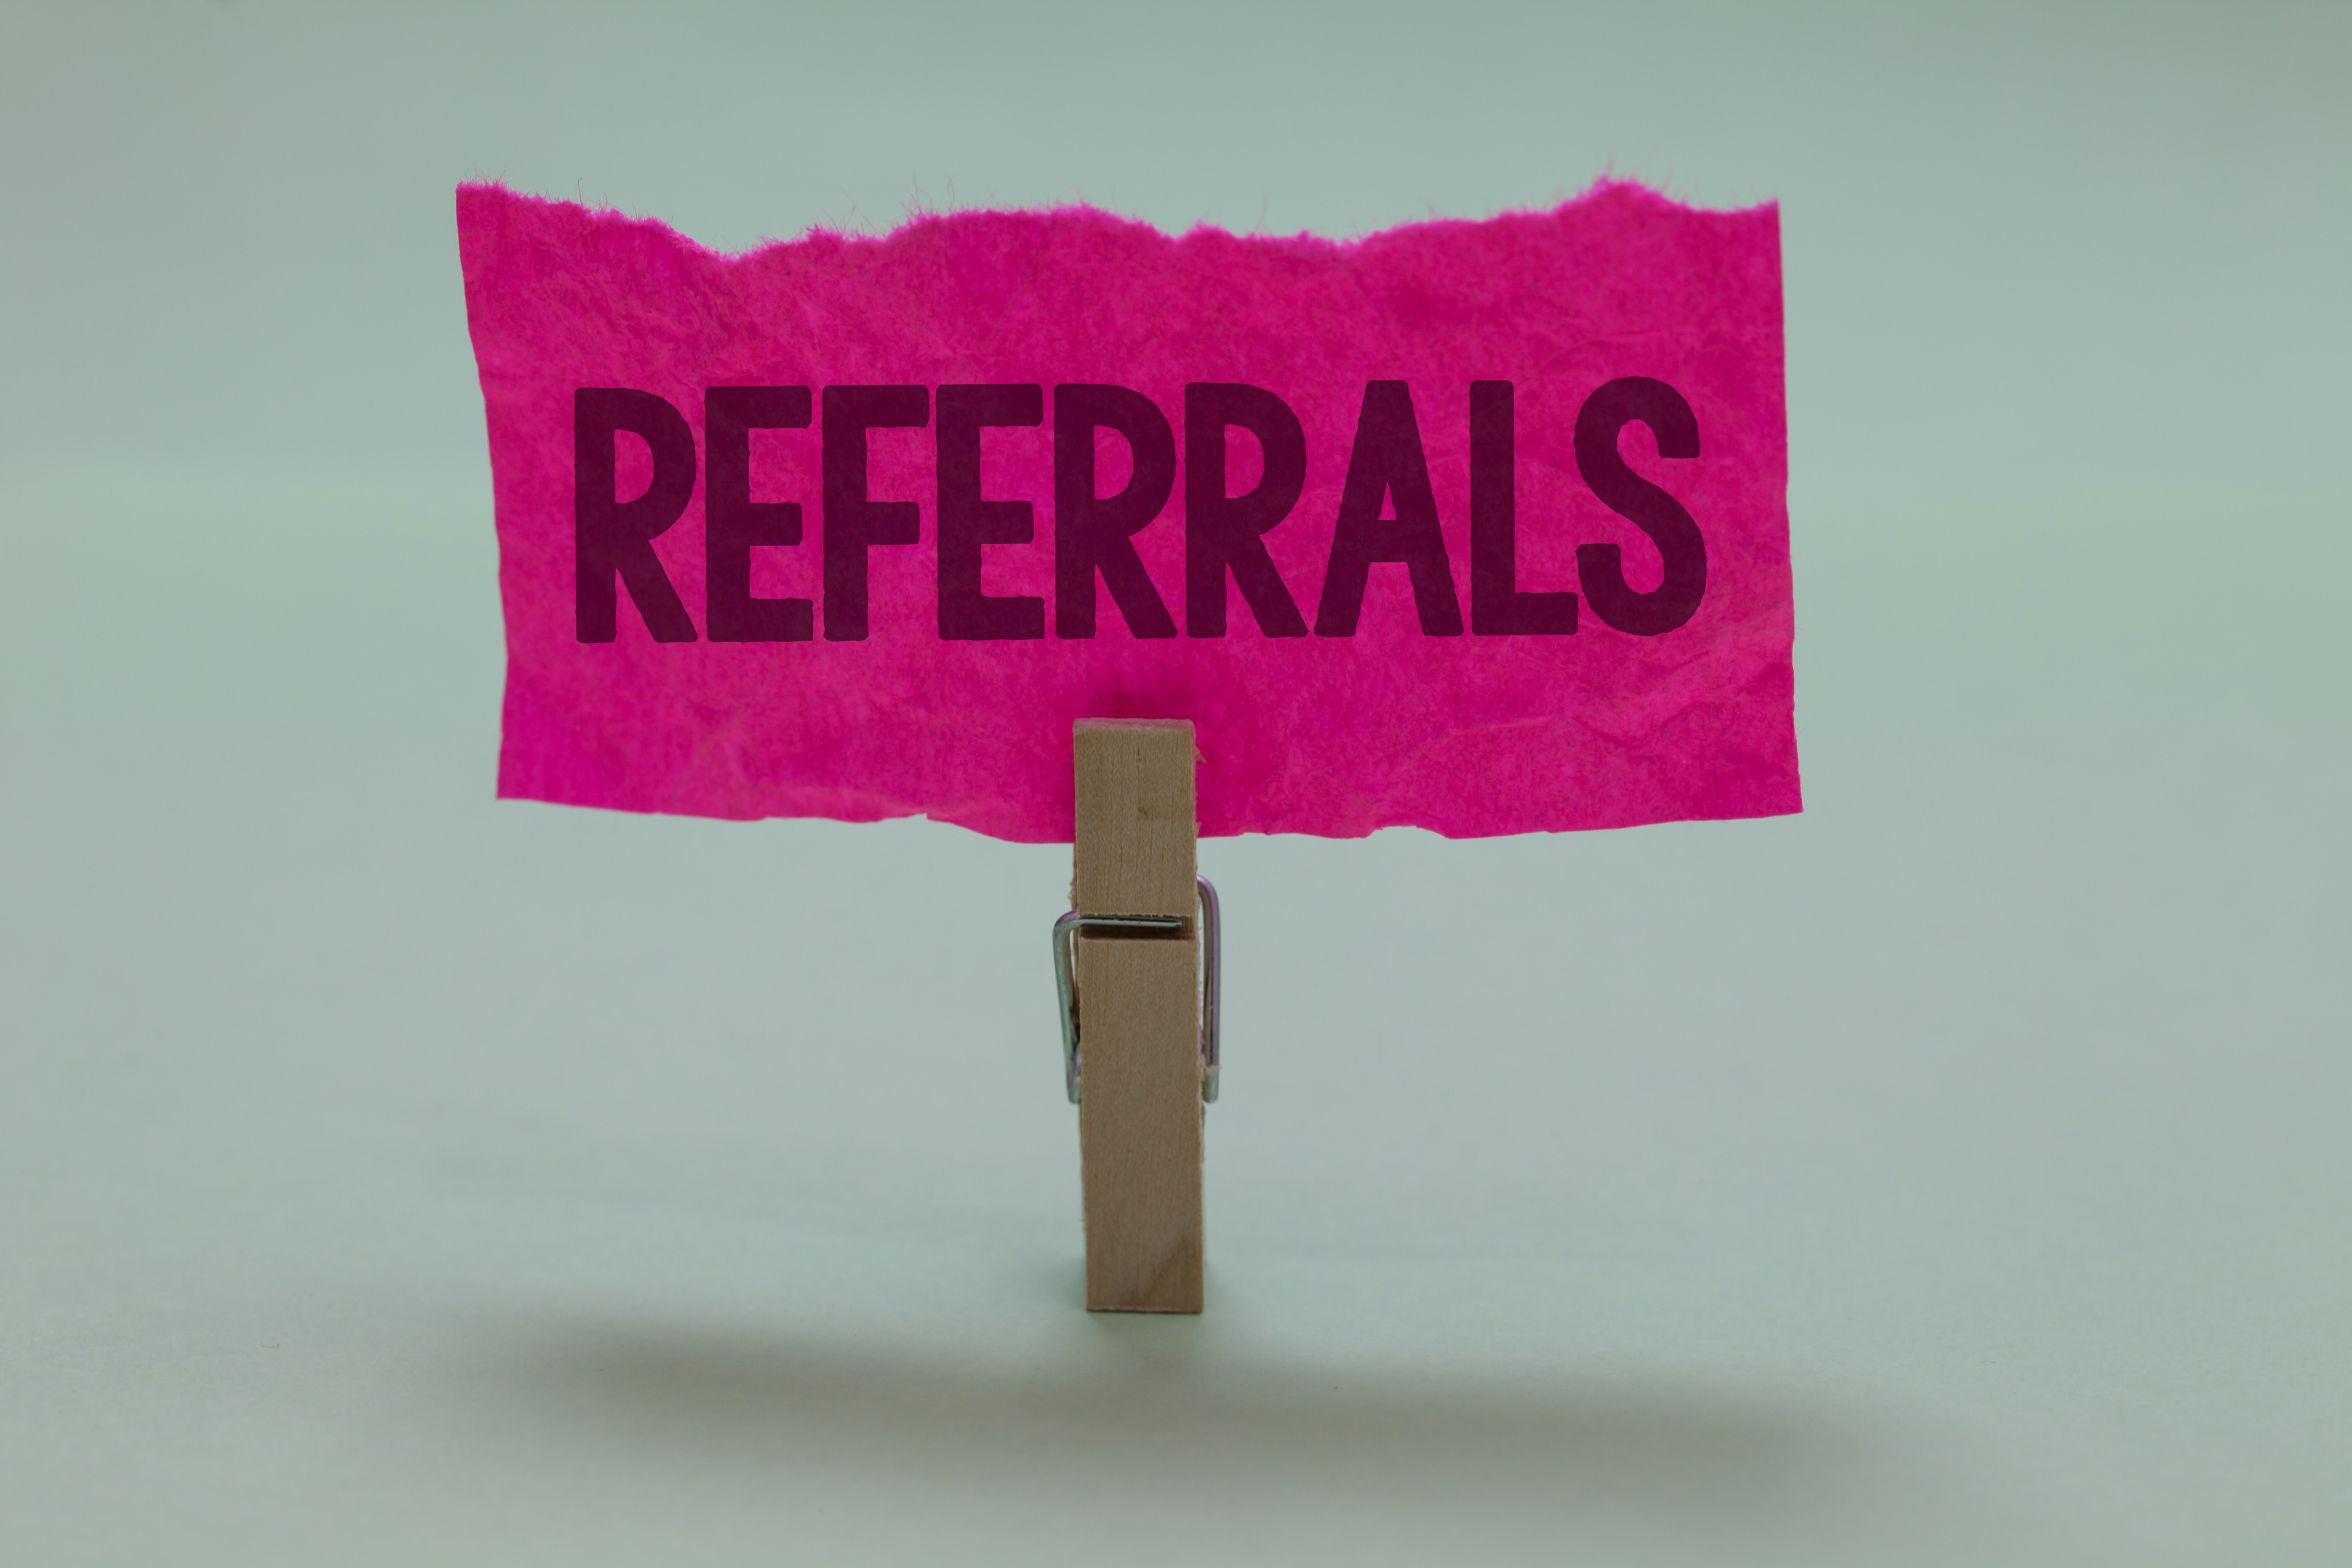 staffing firm referral programs